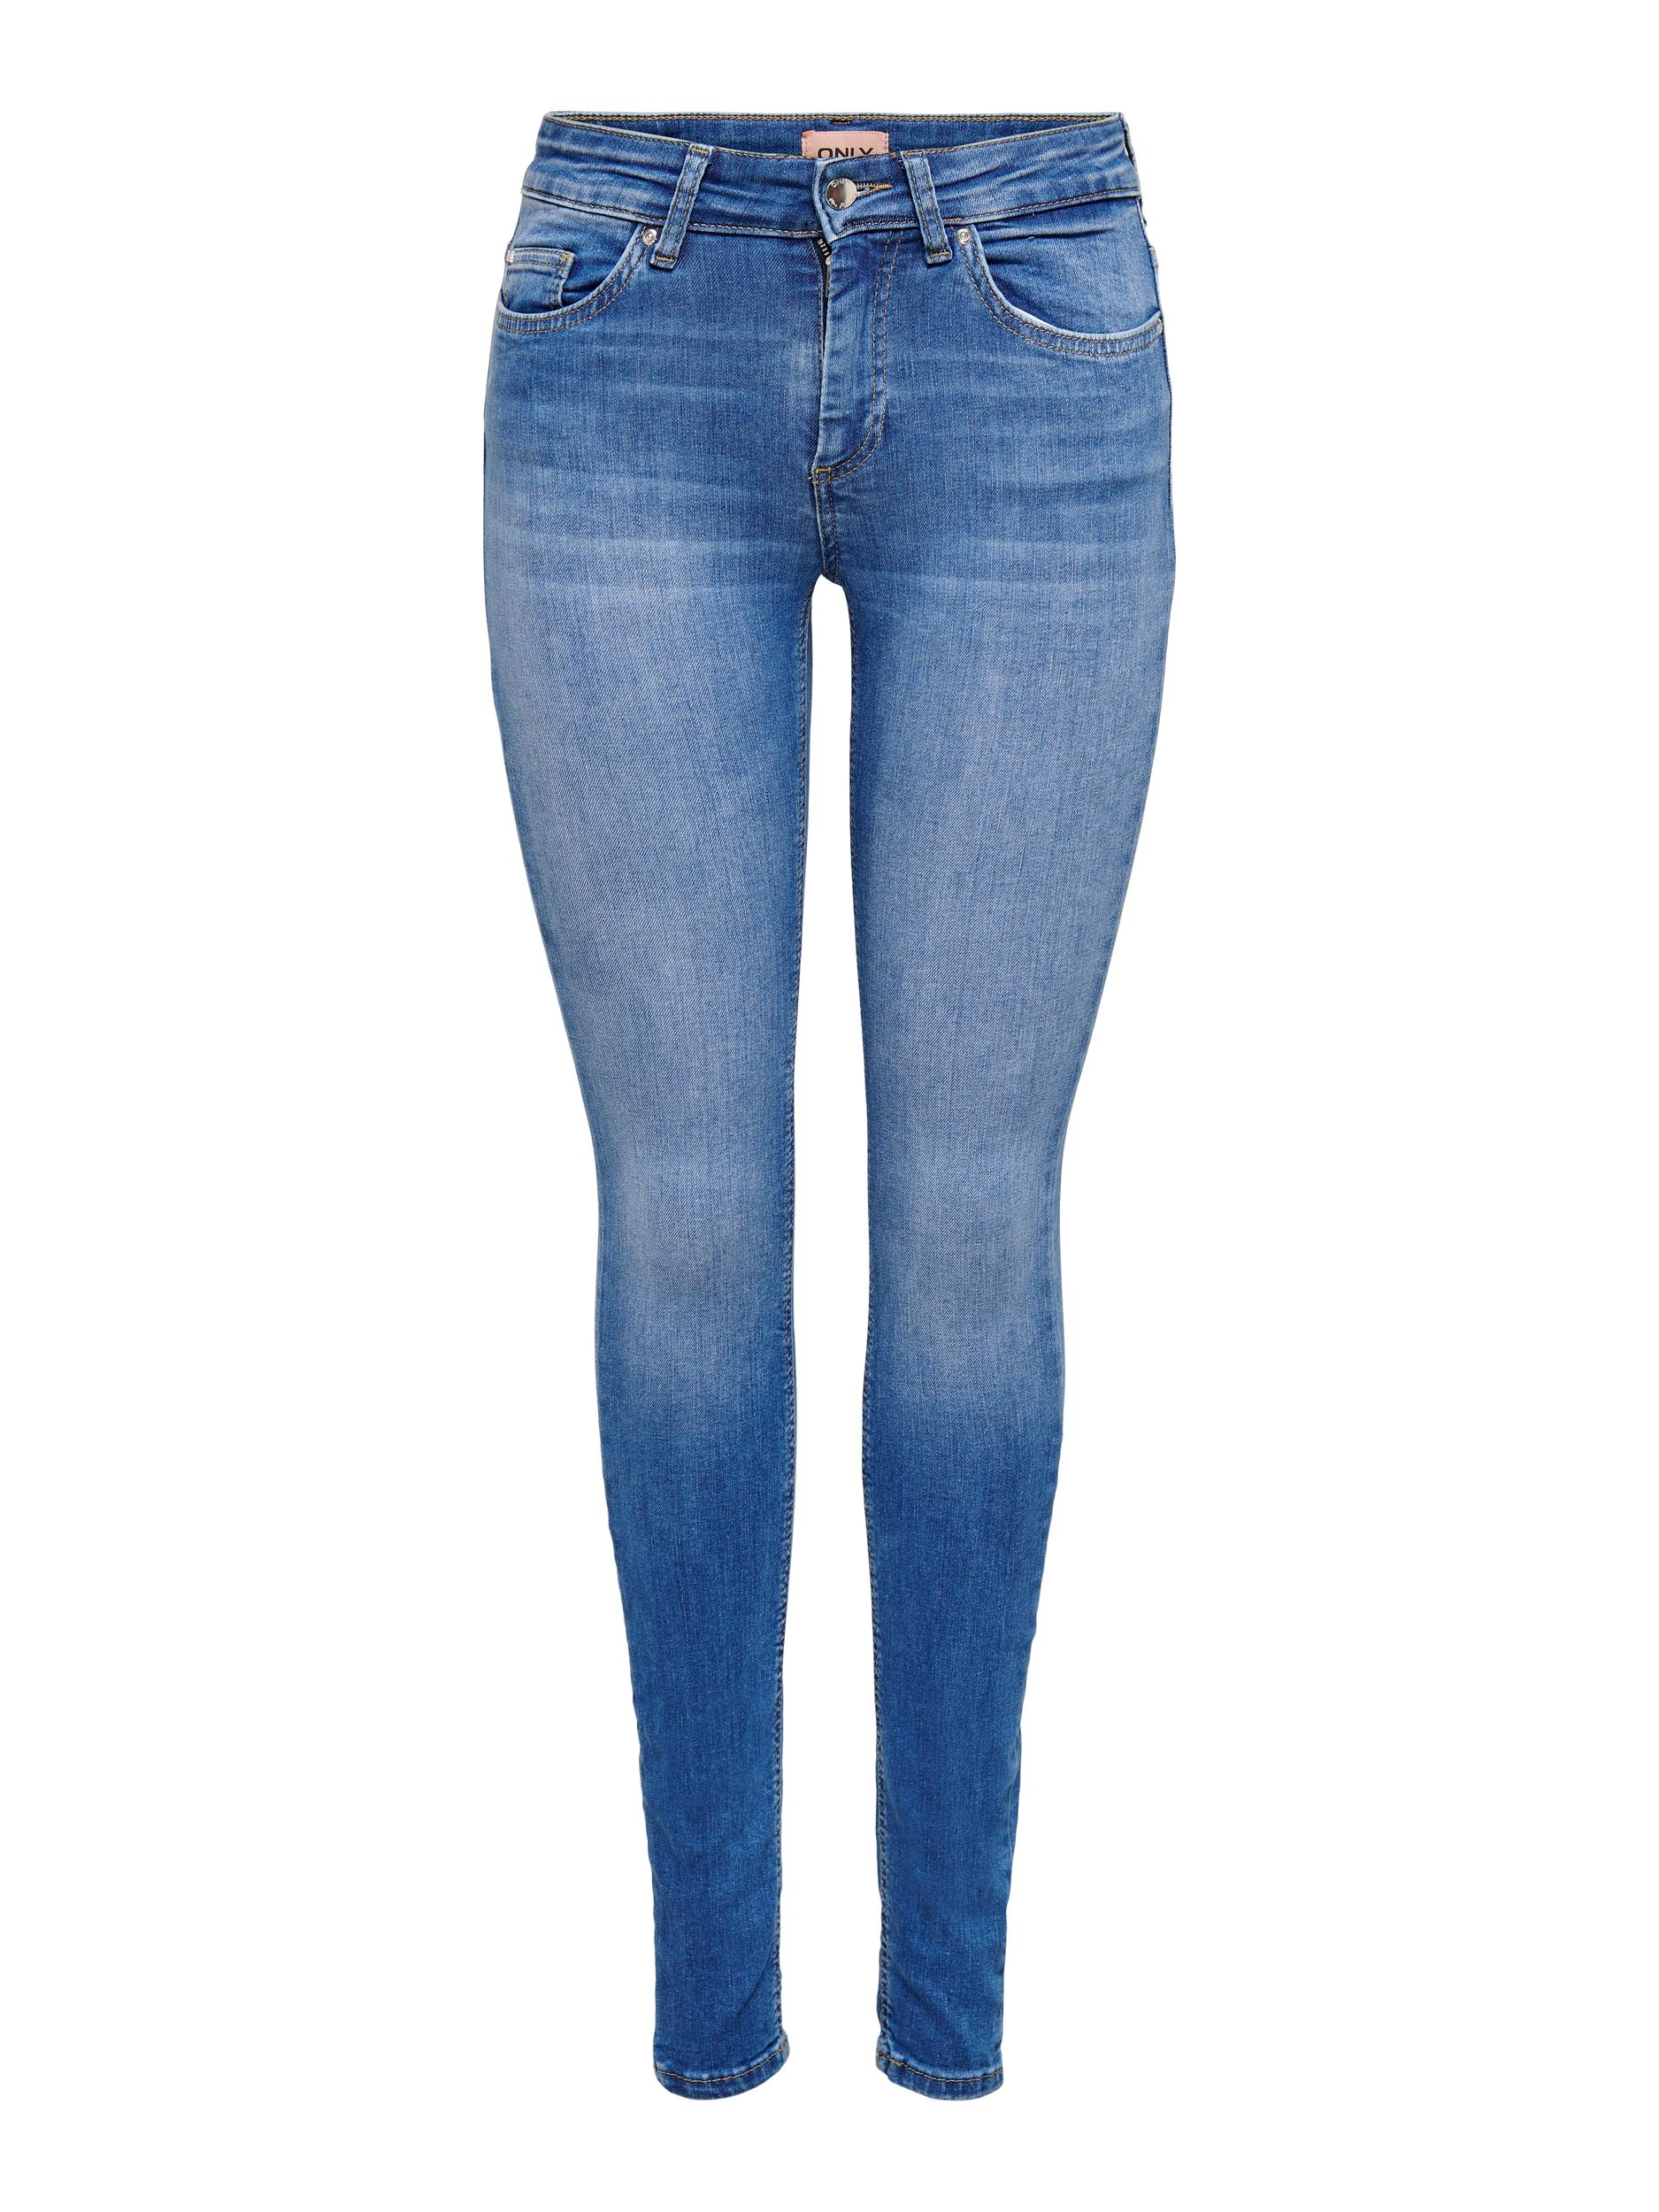 In-Mood Blush Life Skinny Jeans